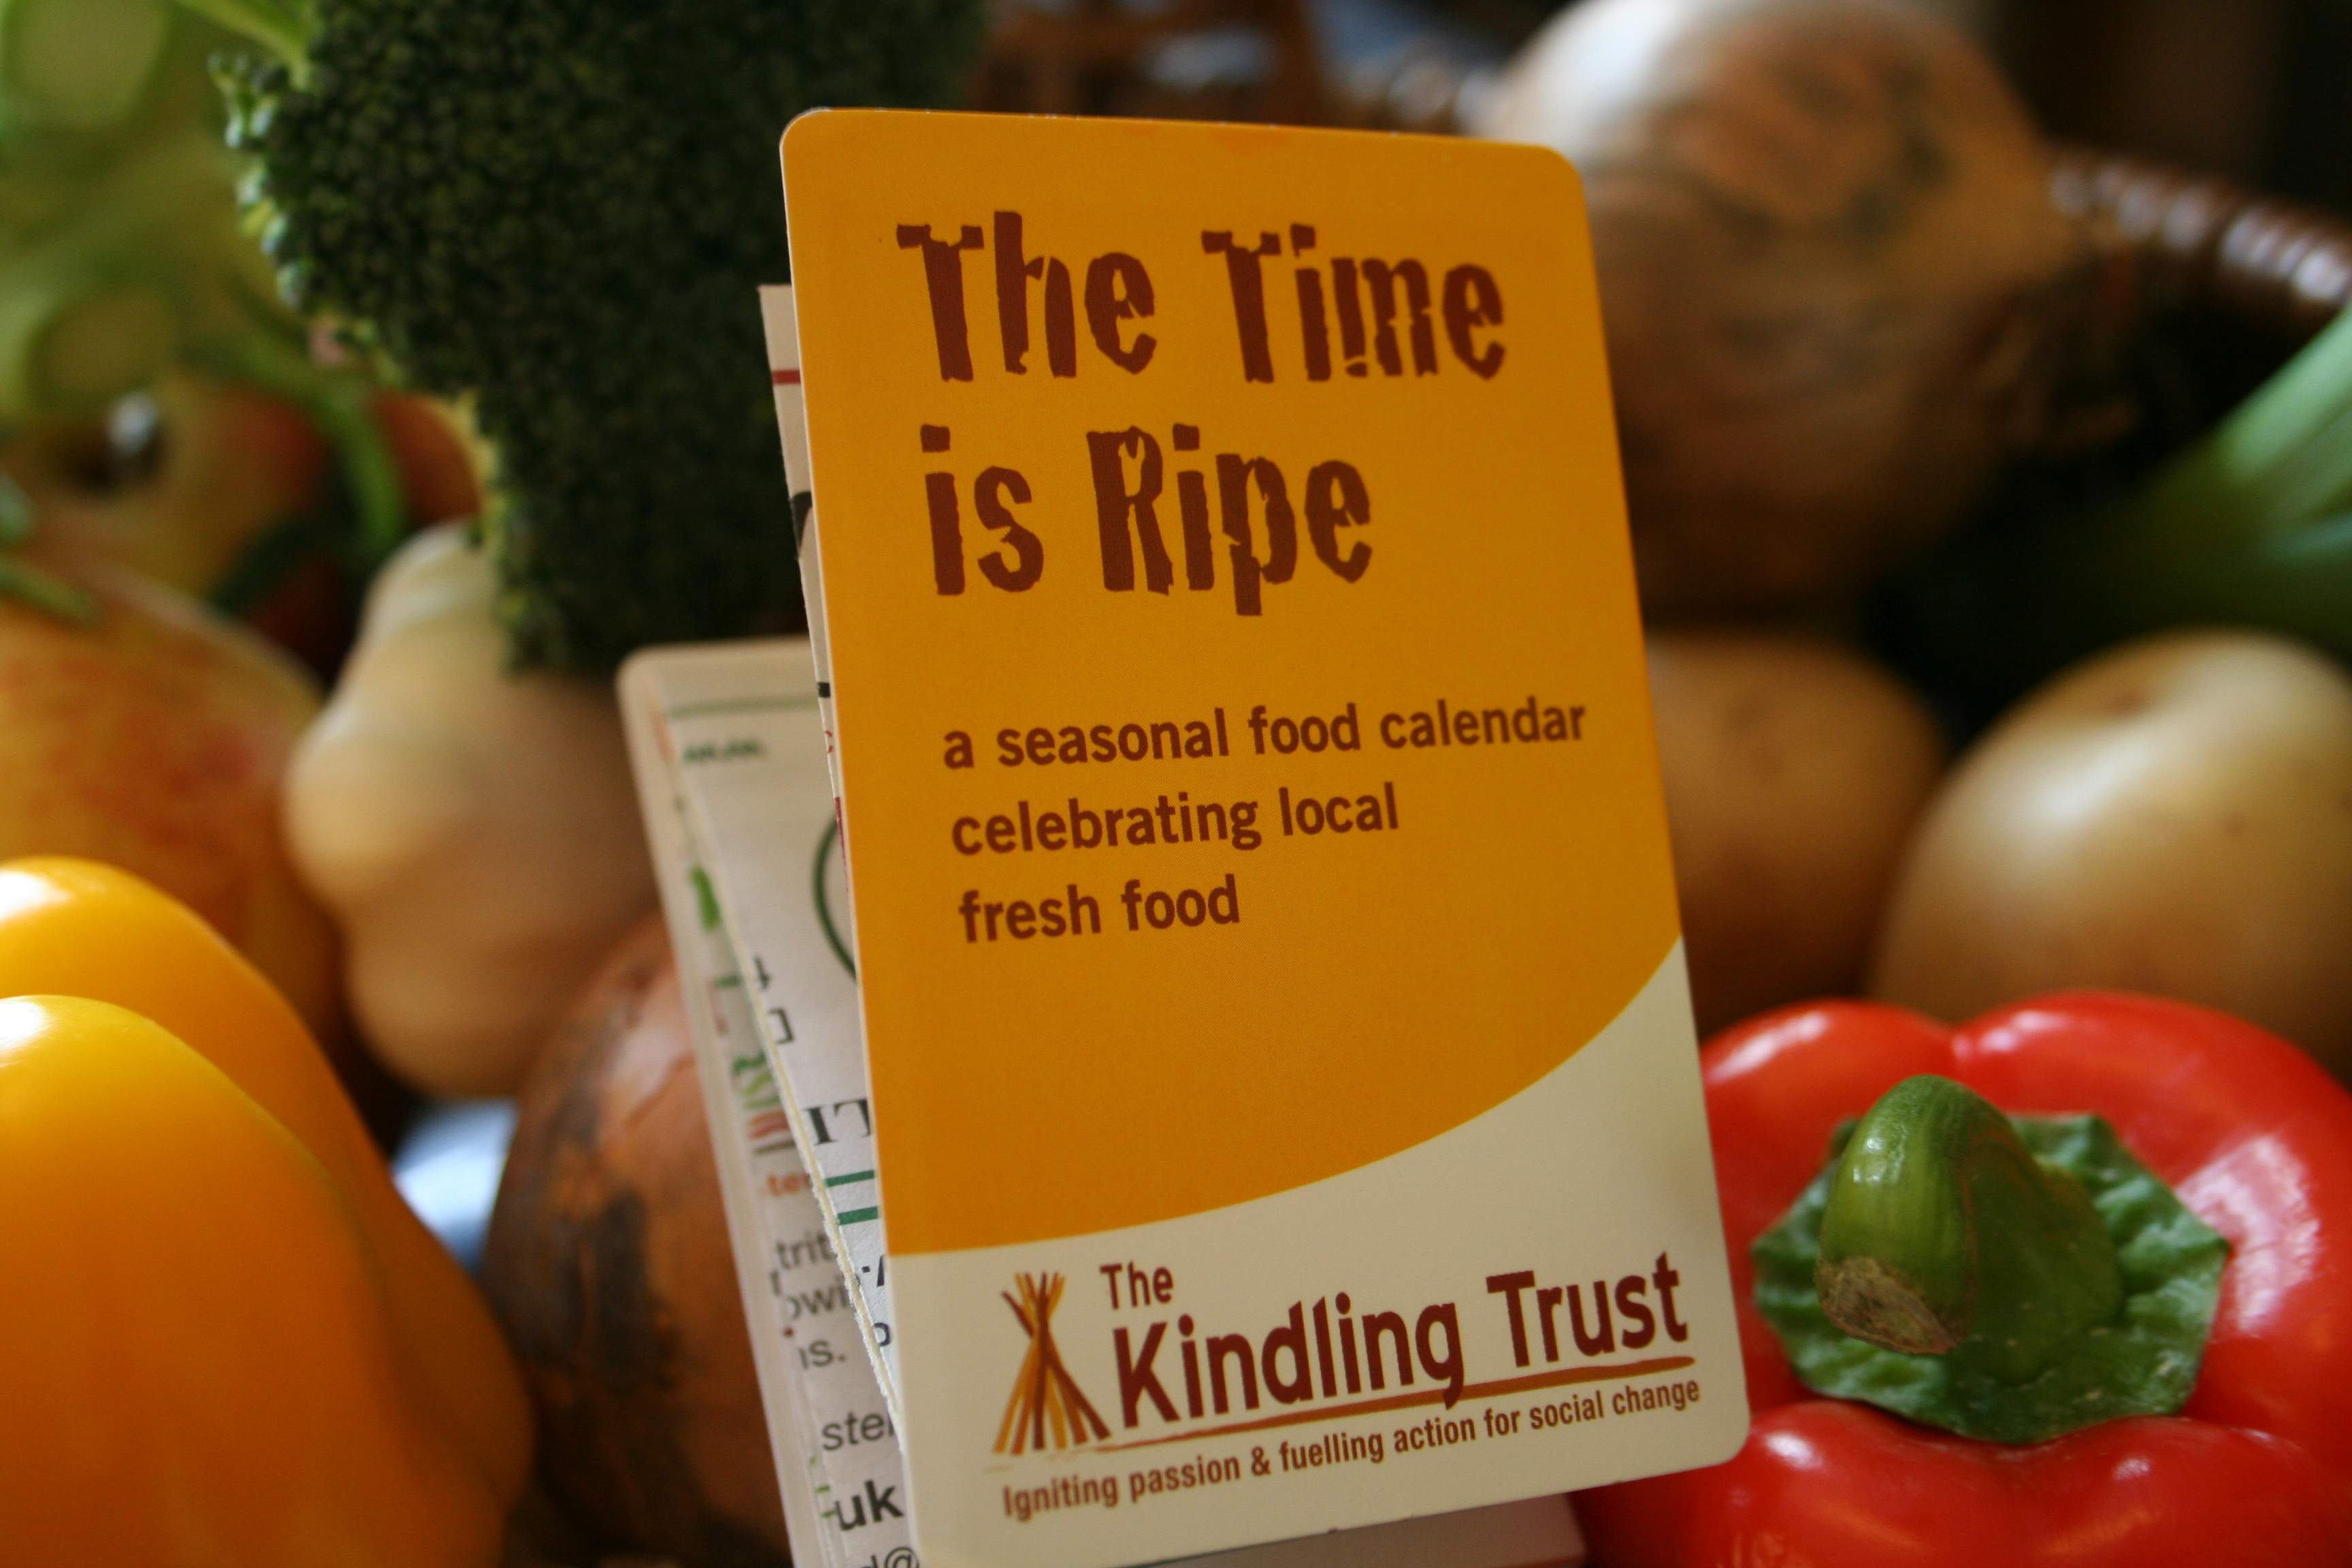 The Time is Ripe seasonal food calendar.